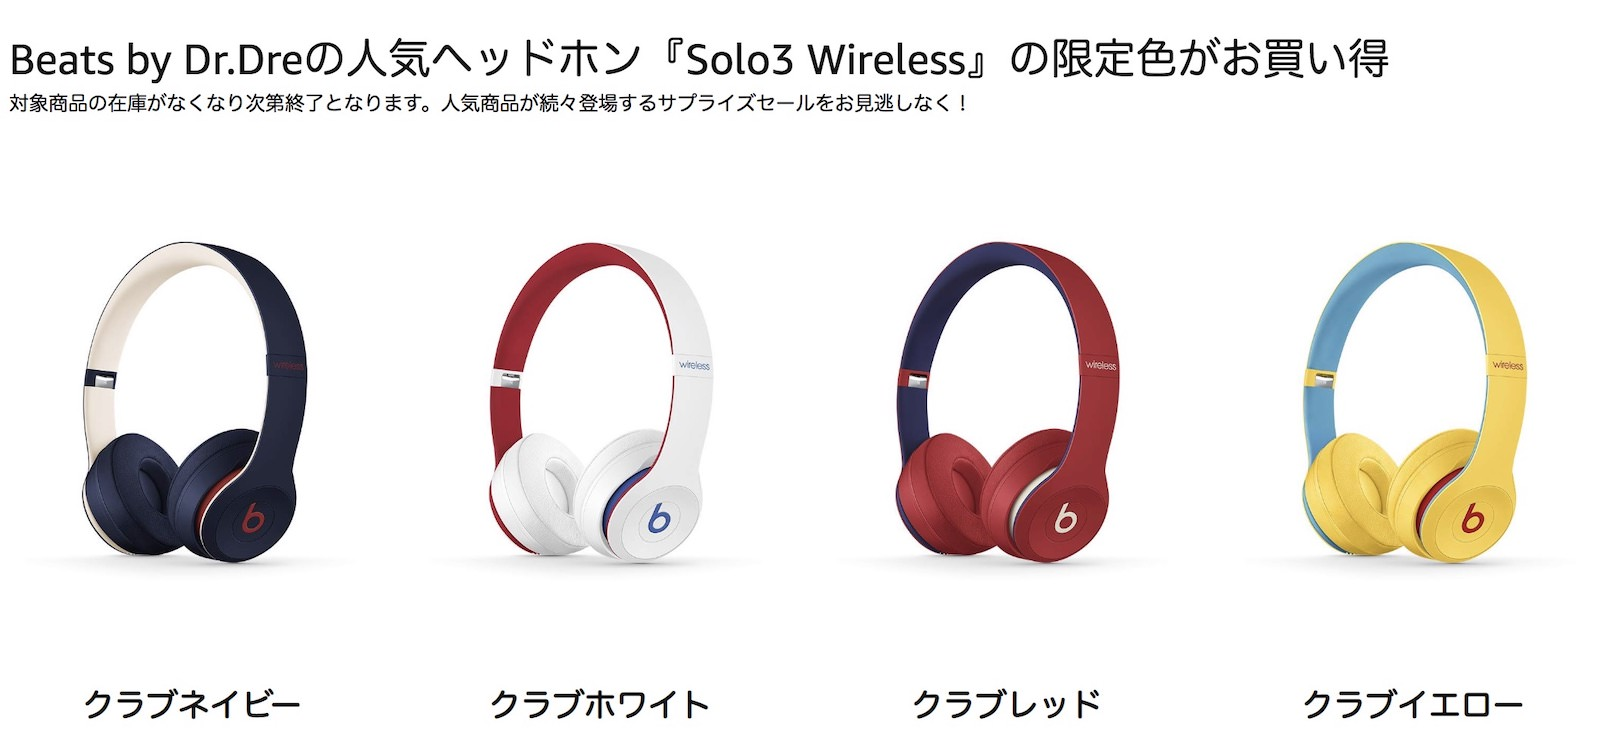 Beats solo3 wireless on sale